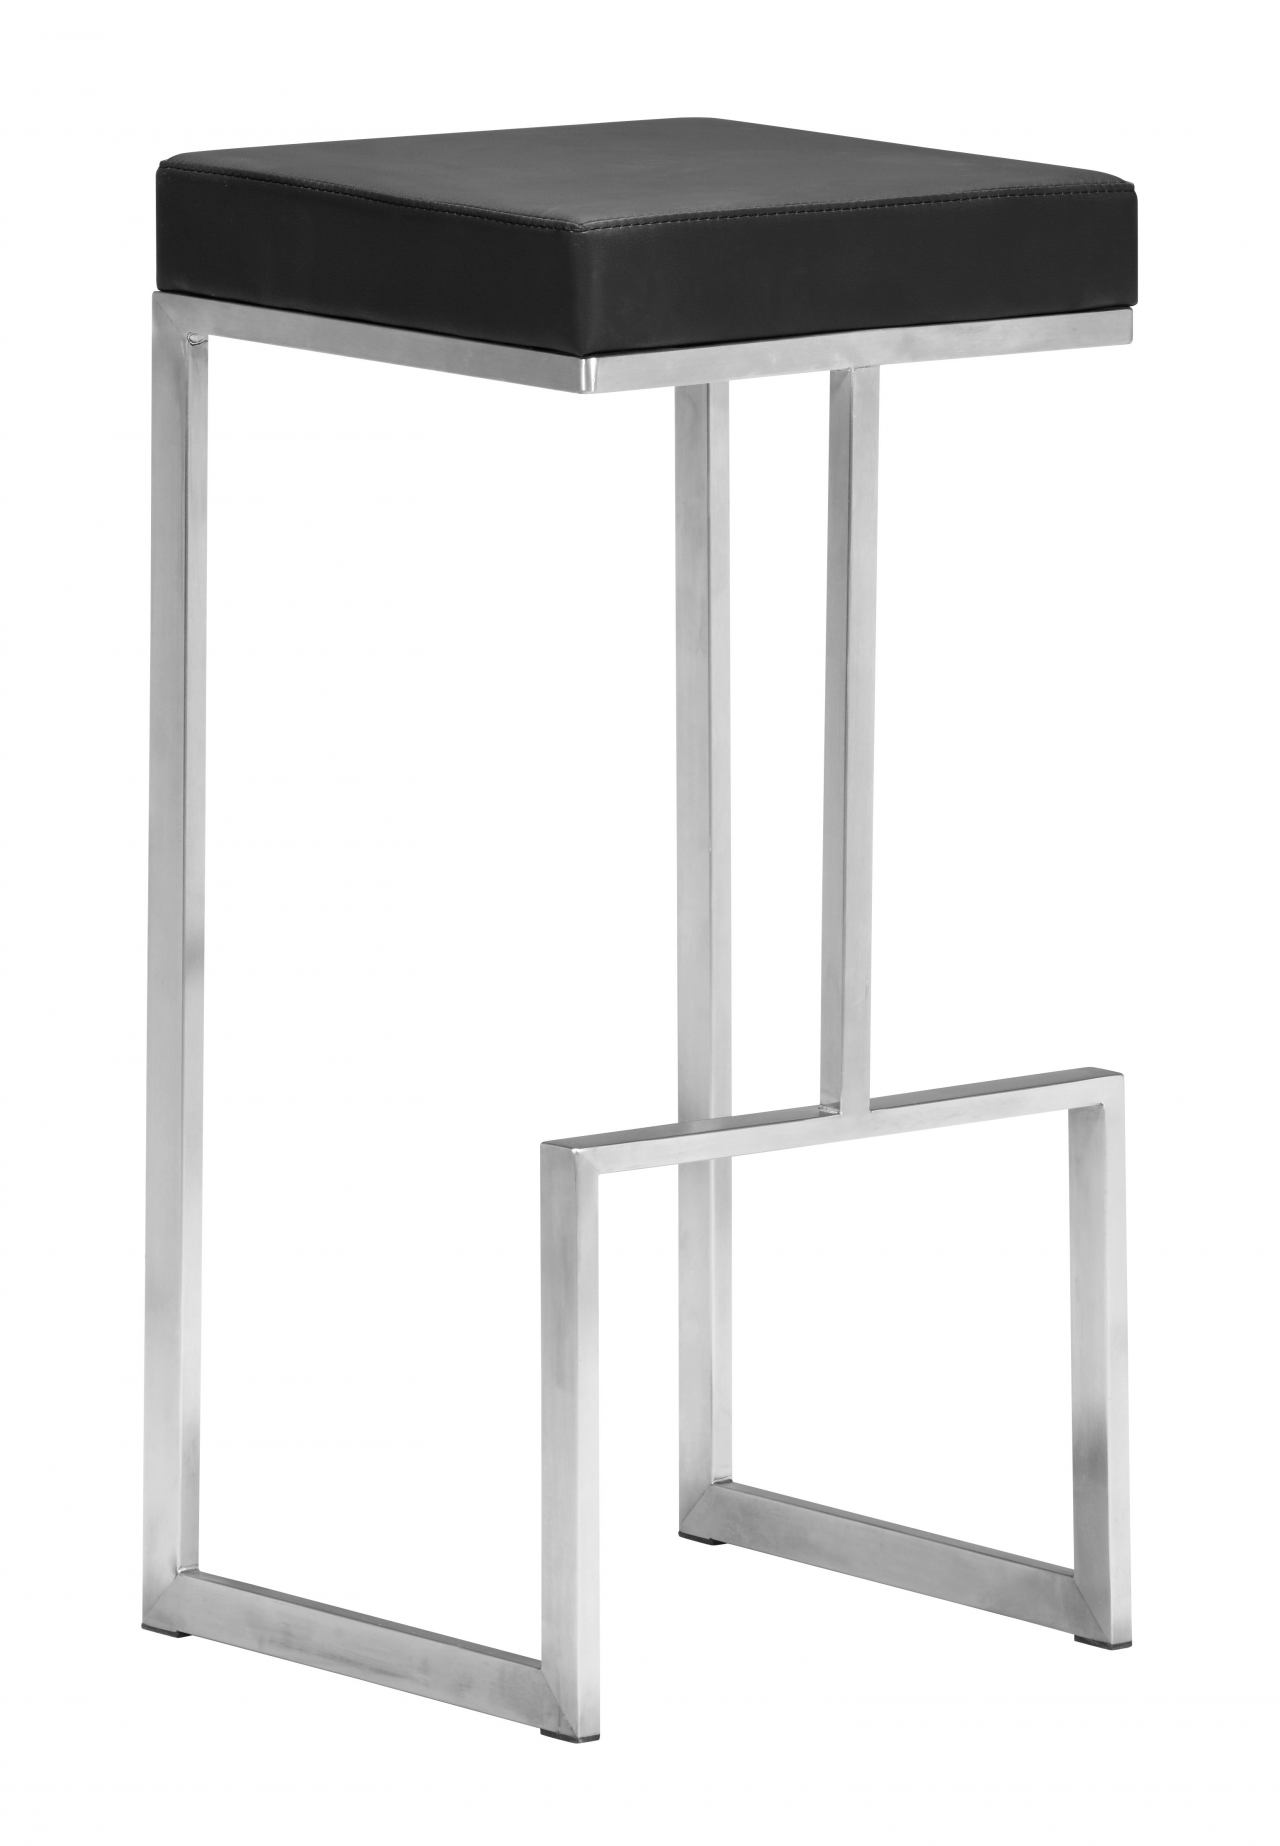 Zuo Modern Darwen Barstool in Black 300045 (Set of 2)